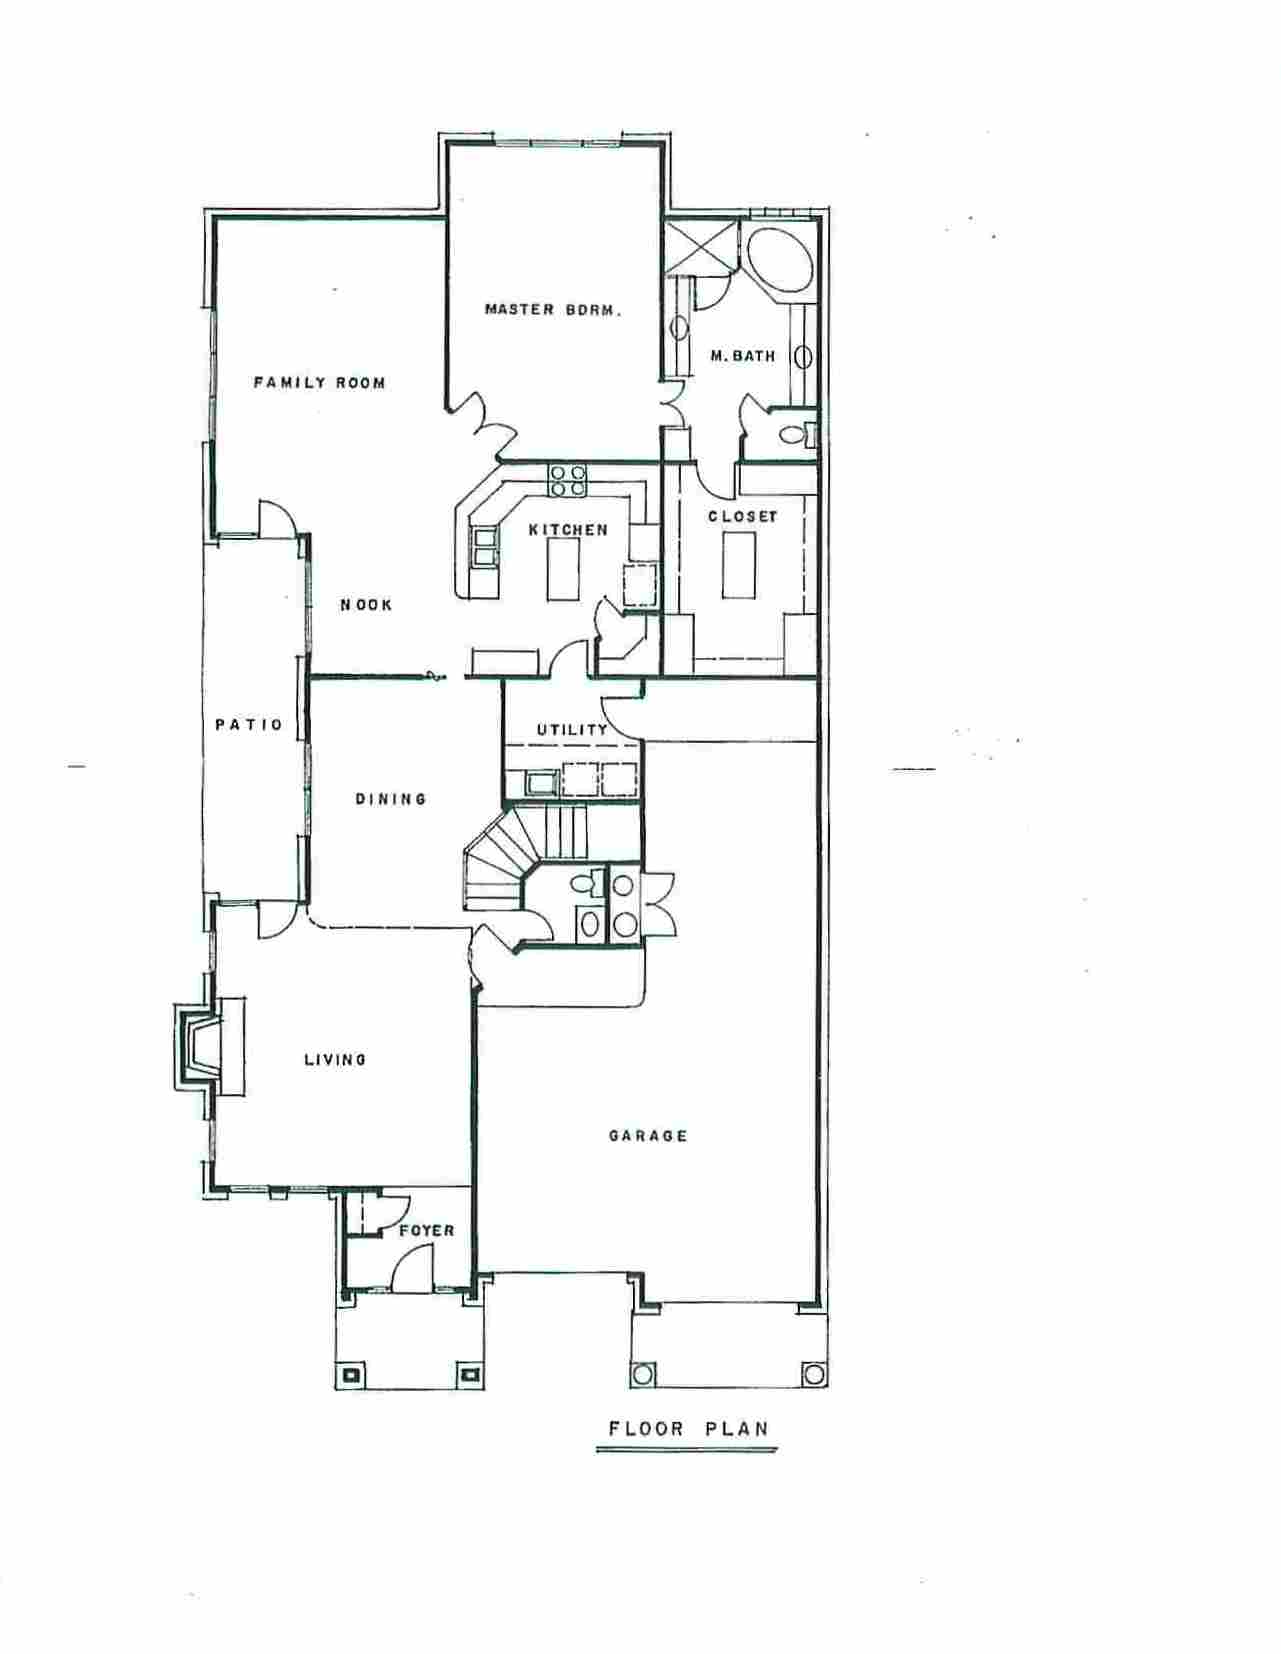 3220 mike thoma construction Tuscan villa floor plans